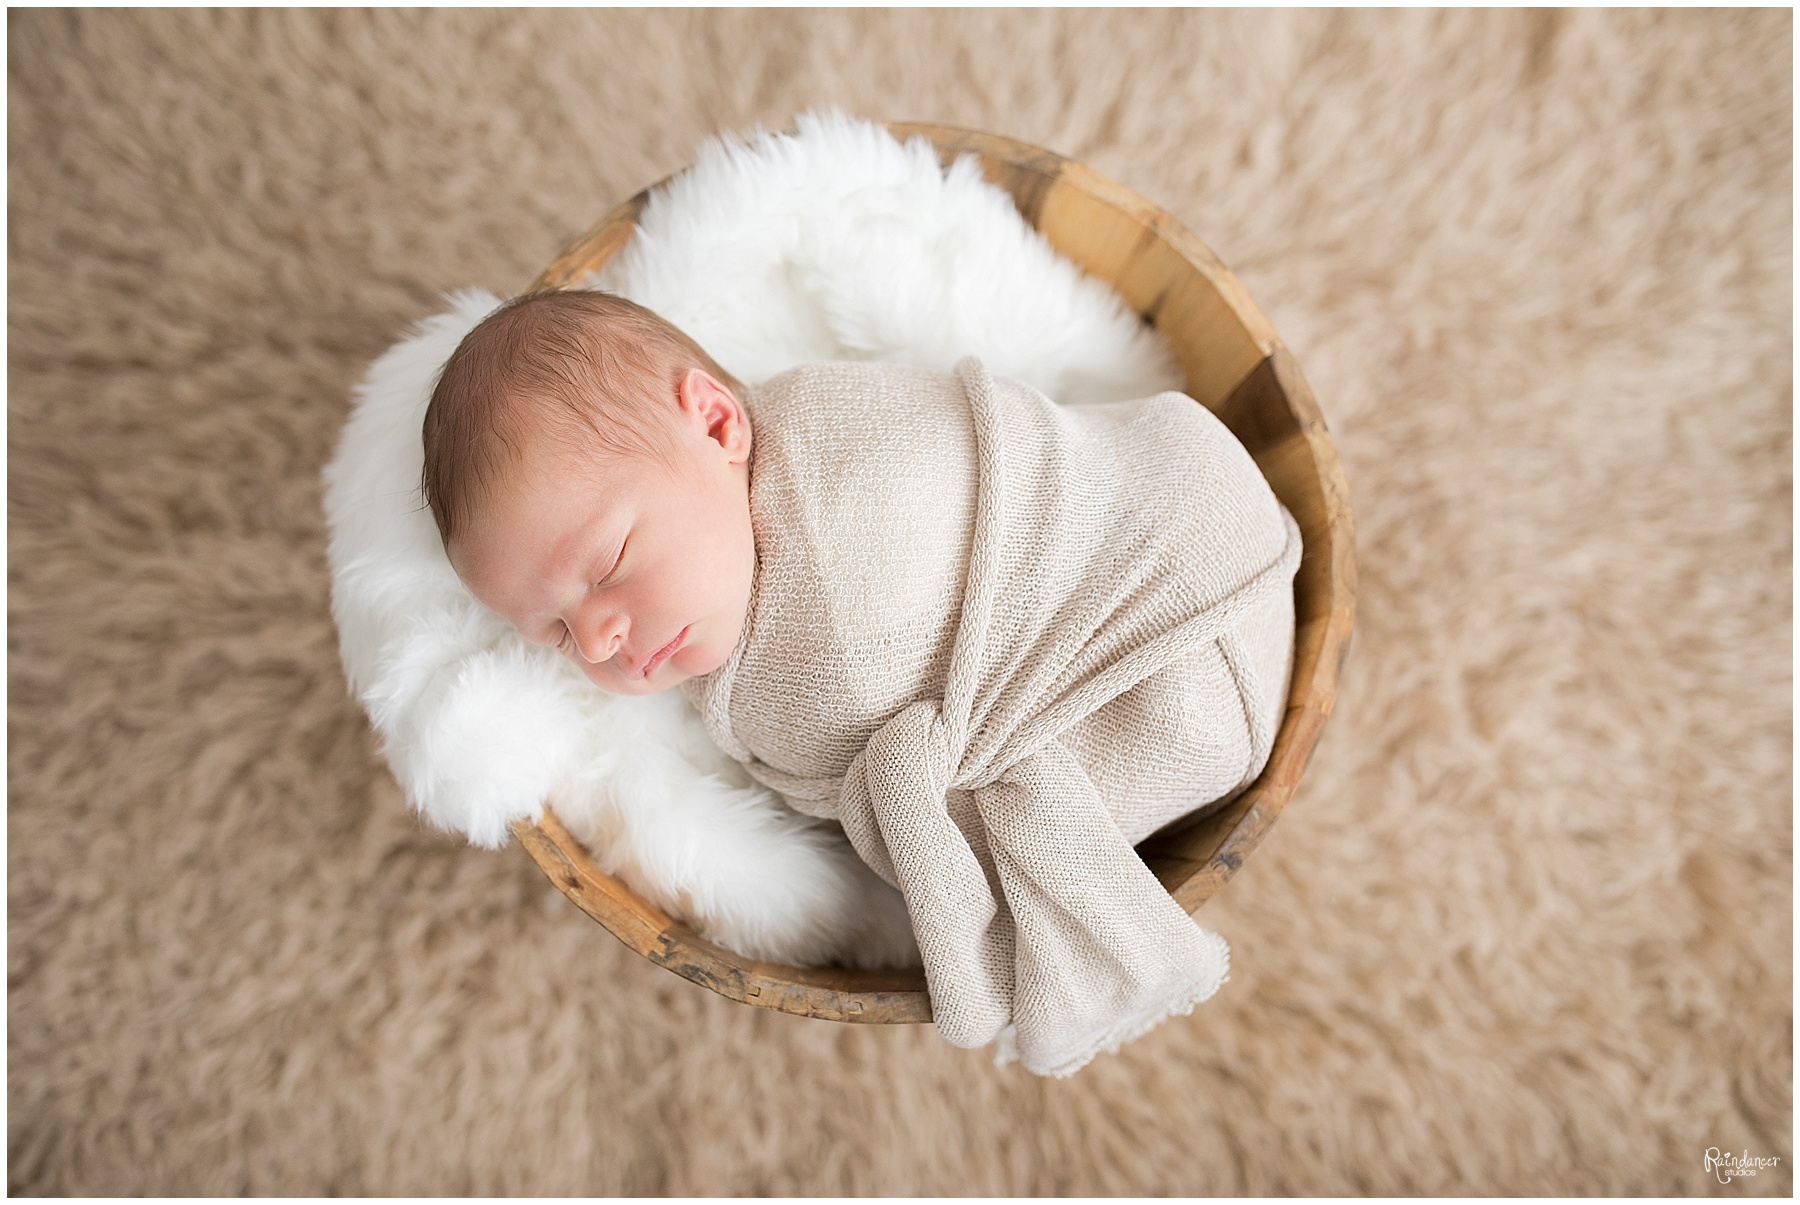 Newborn baby boy sleeping in a swaddle in a rustic bucket by Raindancer Studios Indianapolis Newborn Photographer Jill Howell